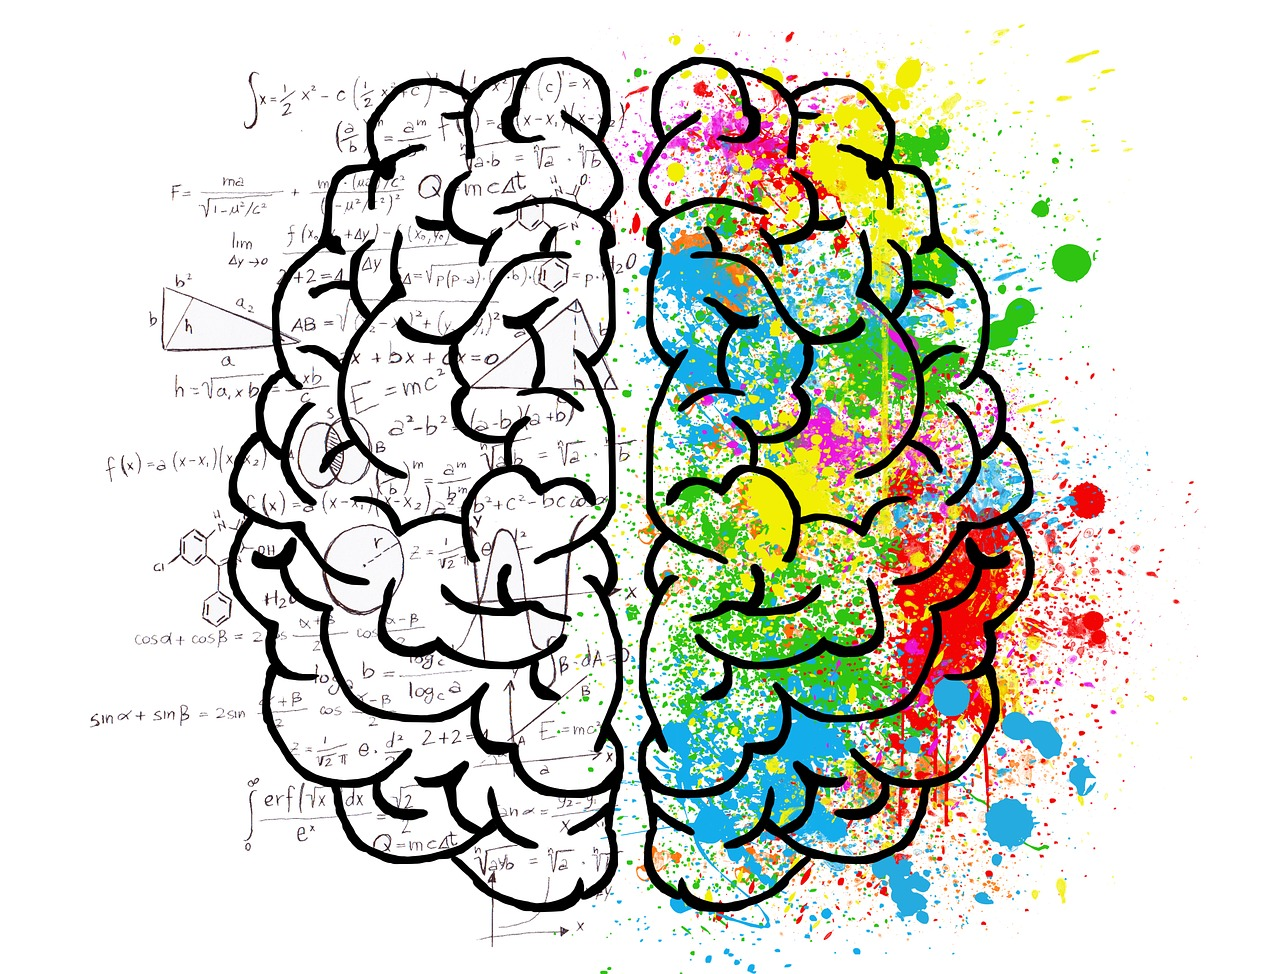 9 techniques to improve your creative thinking abilities